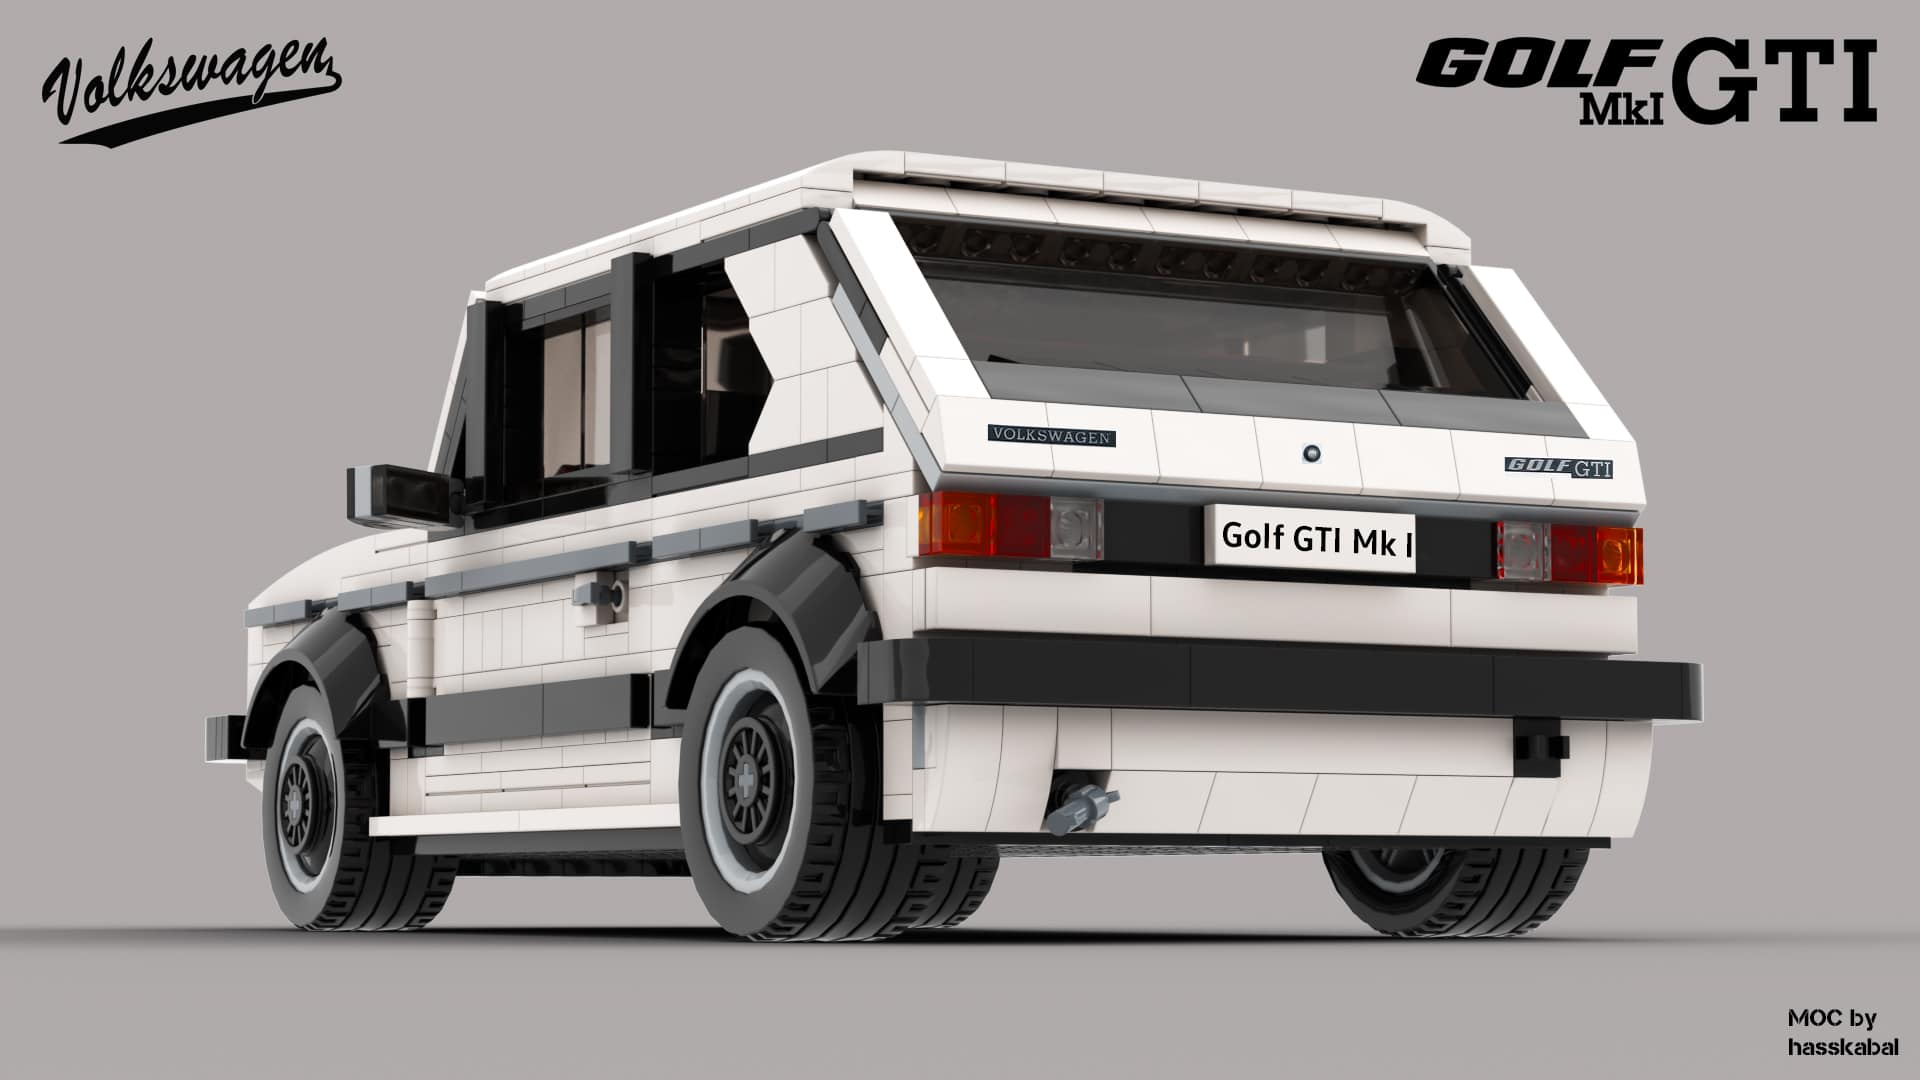 Lego Custom Instructions Volkswagen Golf Mk1 Gti White Edition Lego Instructions Mocsmarket